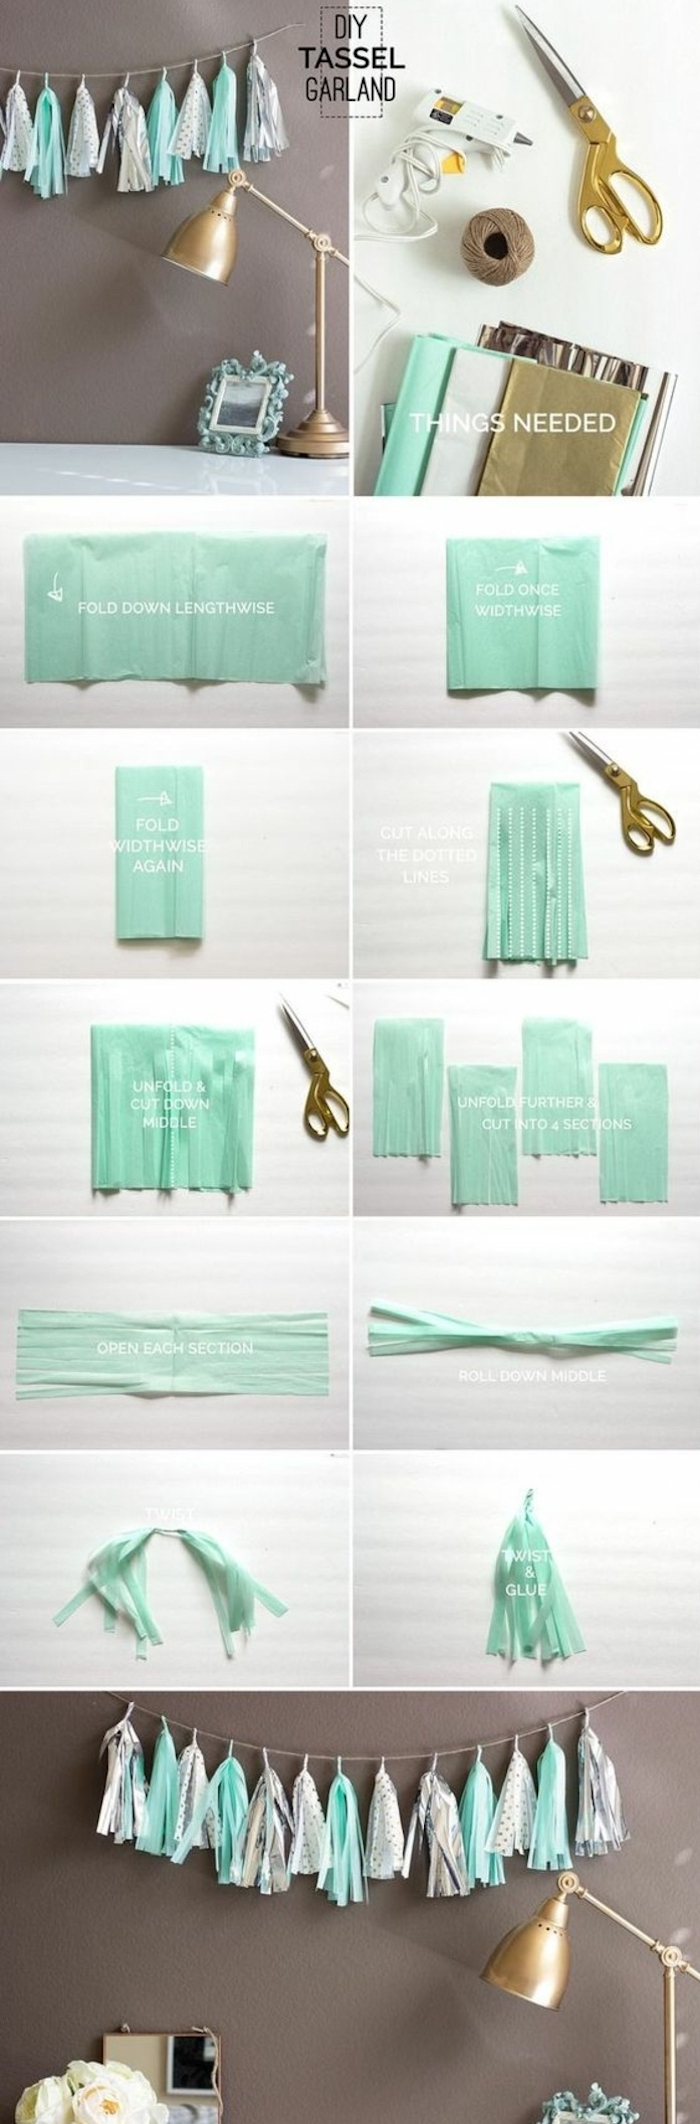 tassel garland, cool diy projects, step by step, diy tutorial, turquoise and grey paper